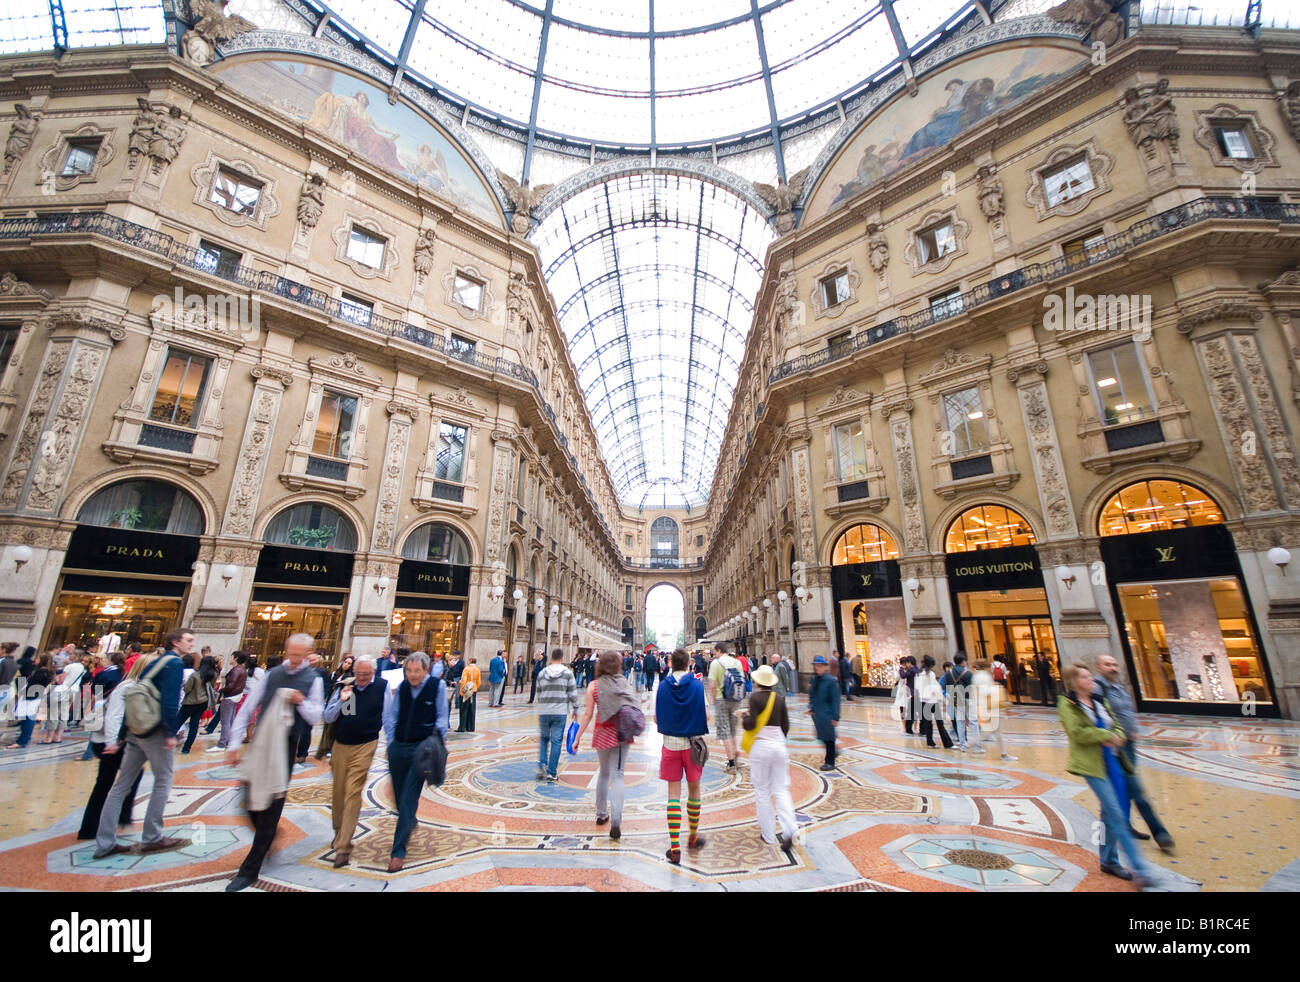 People inside Galleria Vittorio Emanuele 2nd Milan Italy - Stock Image